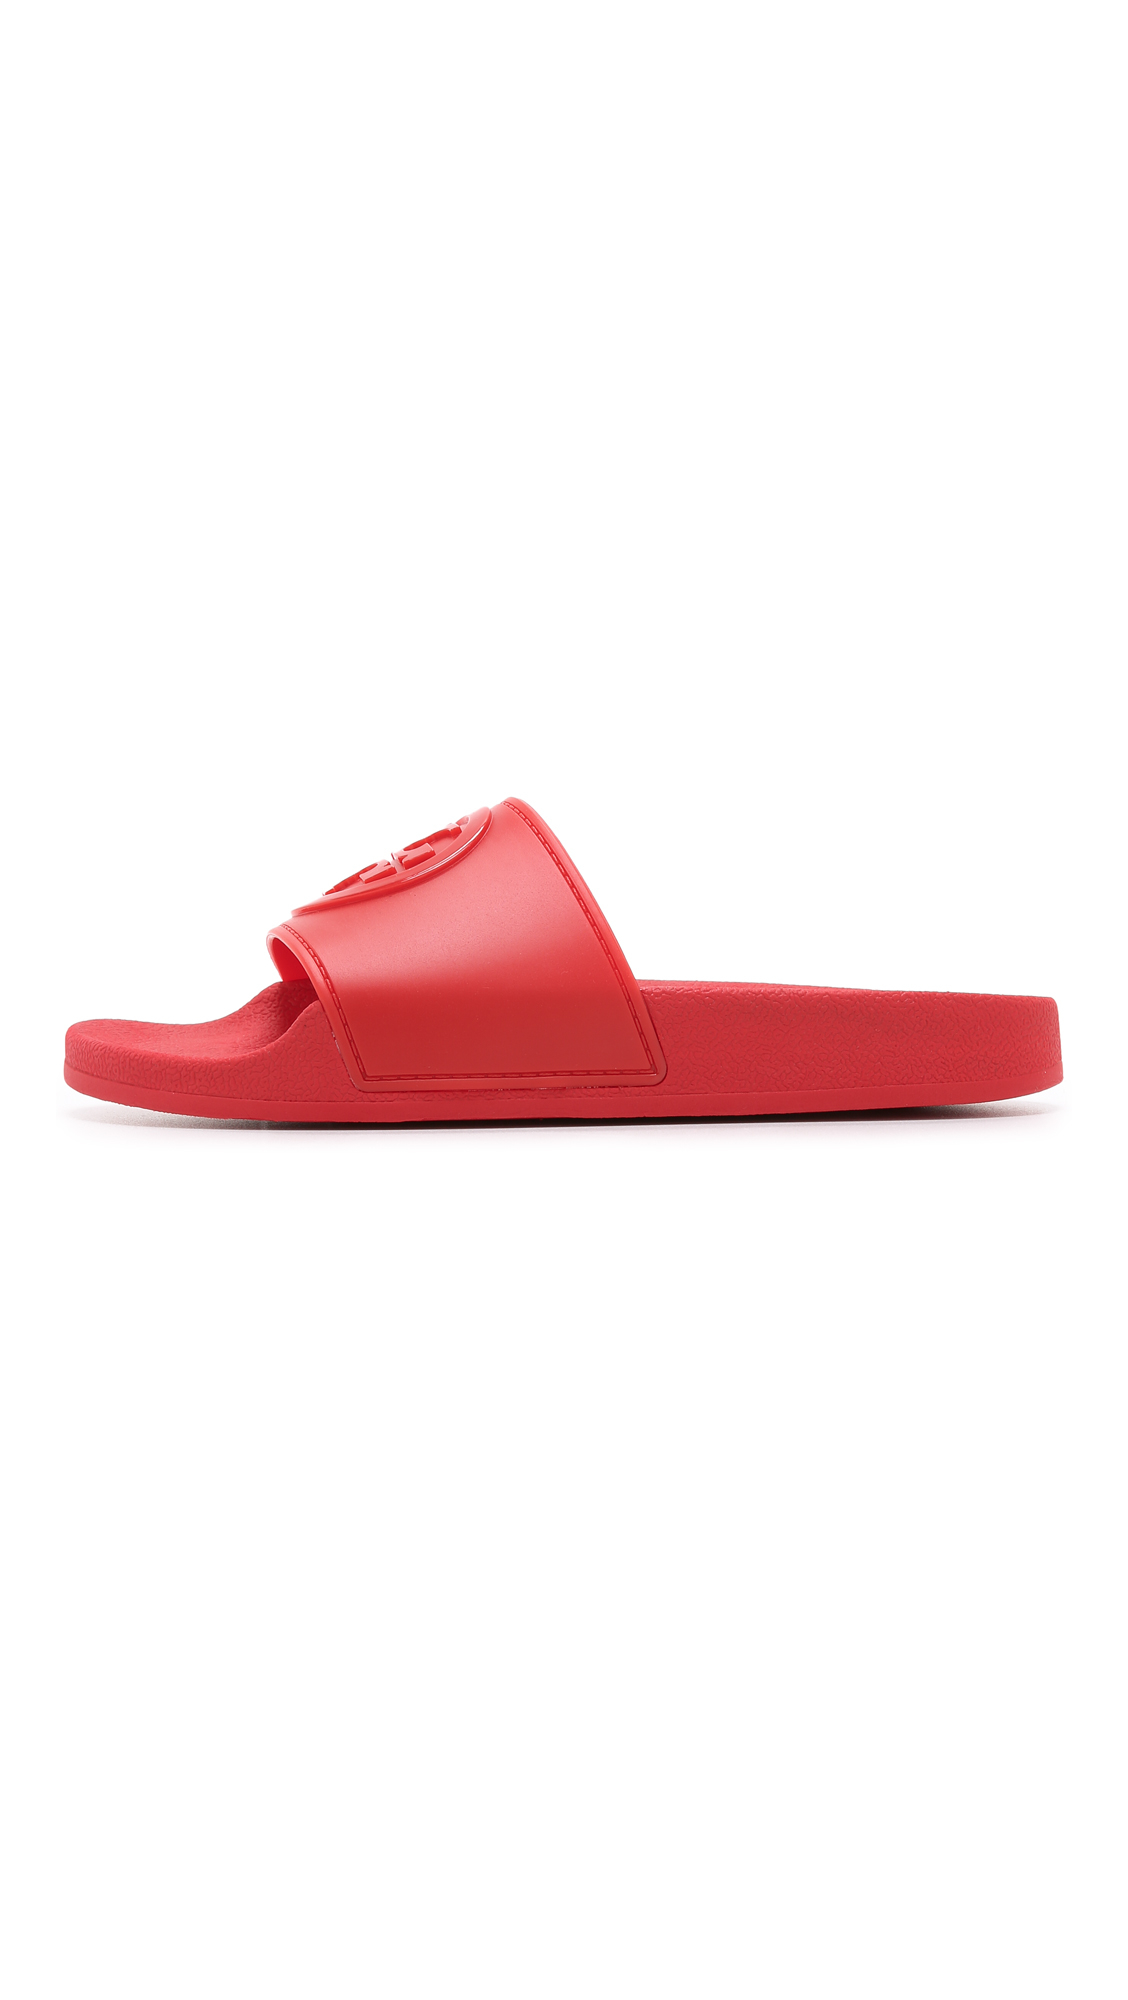 a5d980aec Lyst - Tory Burch Jelly Flat Slides in Red